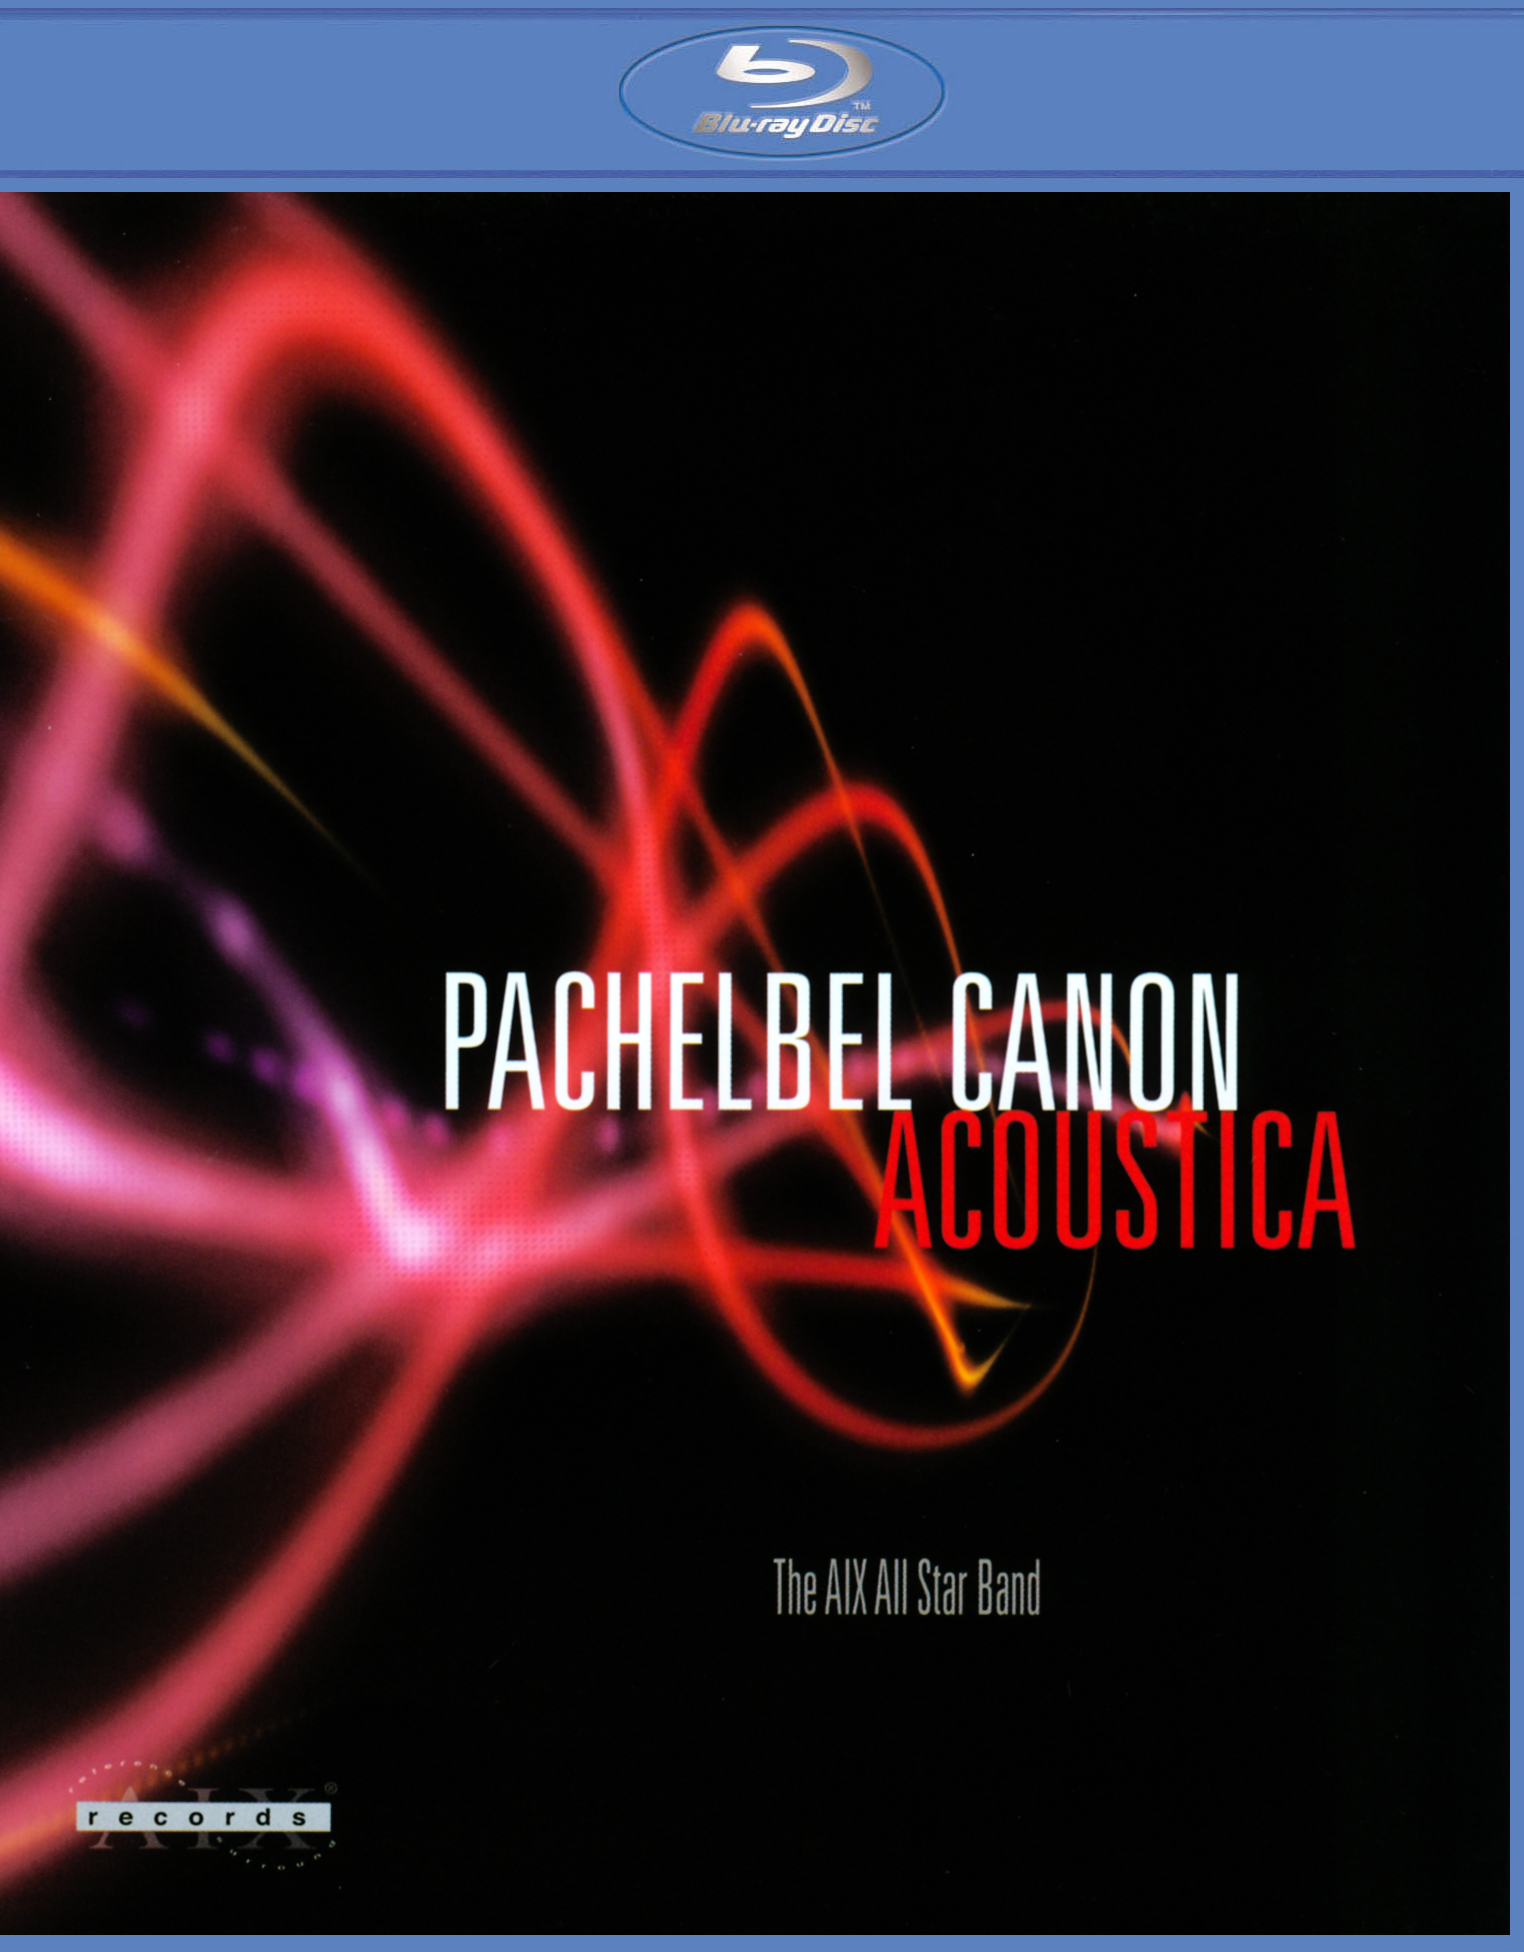 The AIX All Star Band: Pachelbel Canon Acoustica